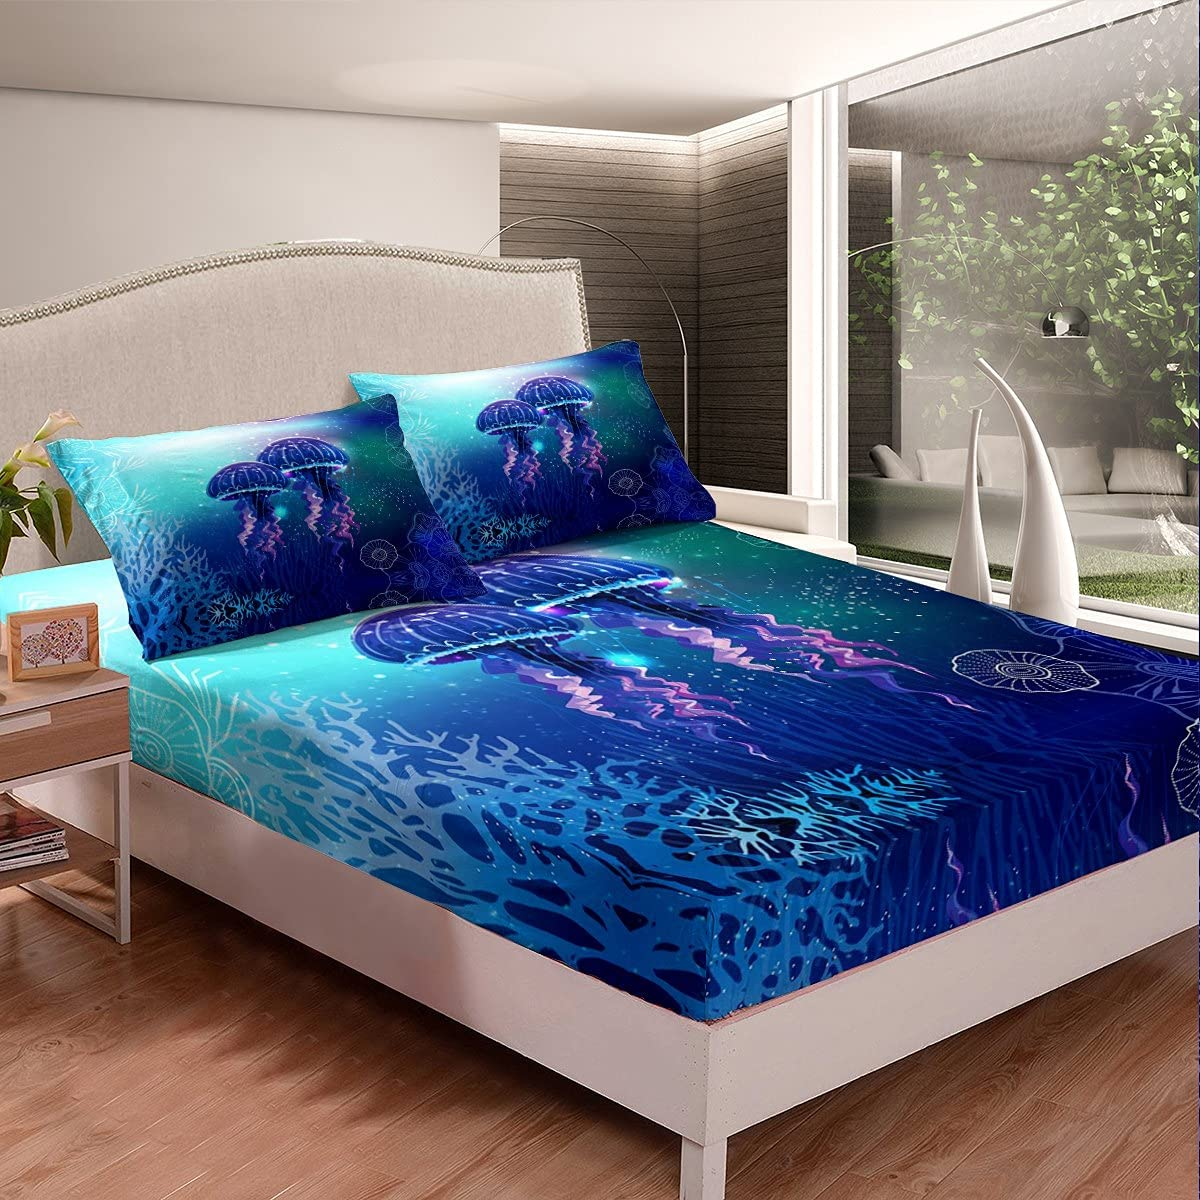 Jellyfish Surprise price Fitted Sheet Blue Purple Cheap mail order specialty store Pattern Life Set Marine